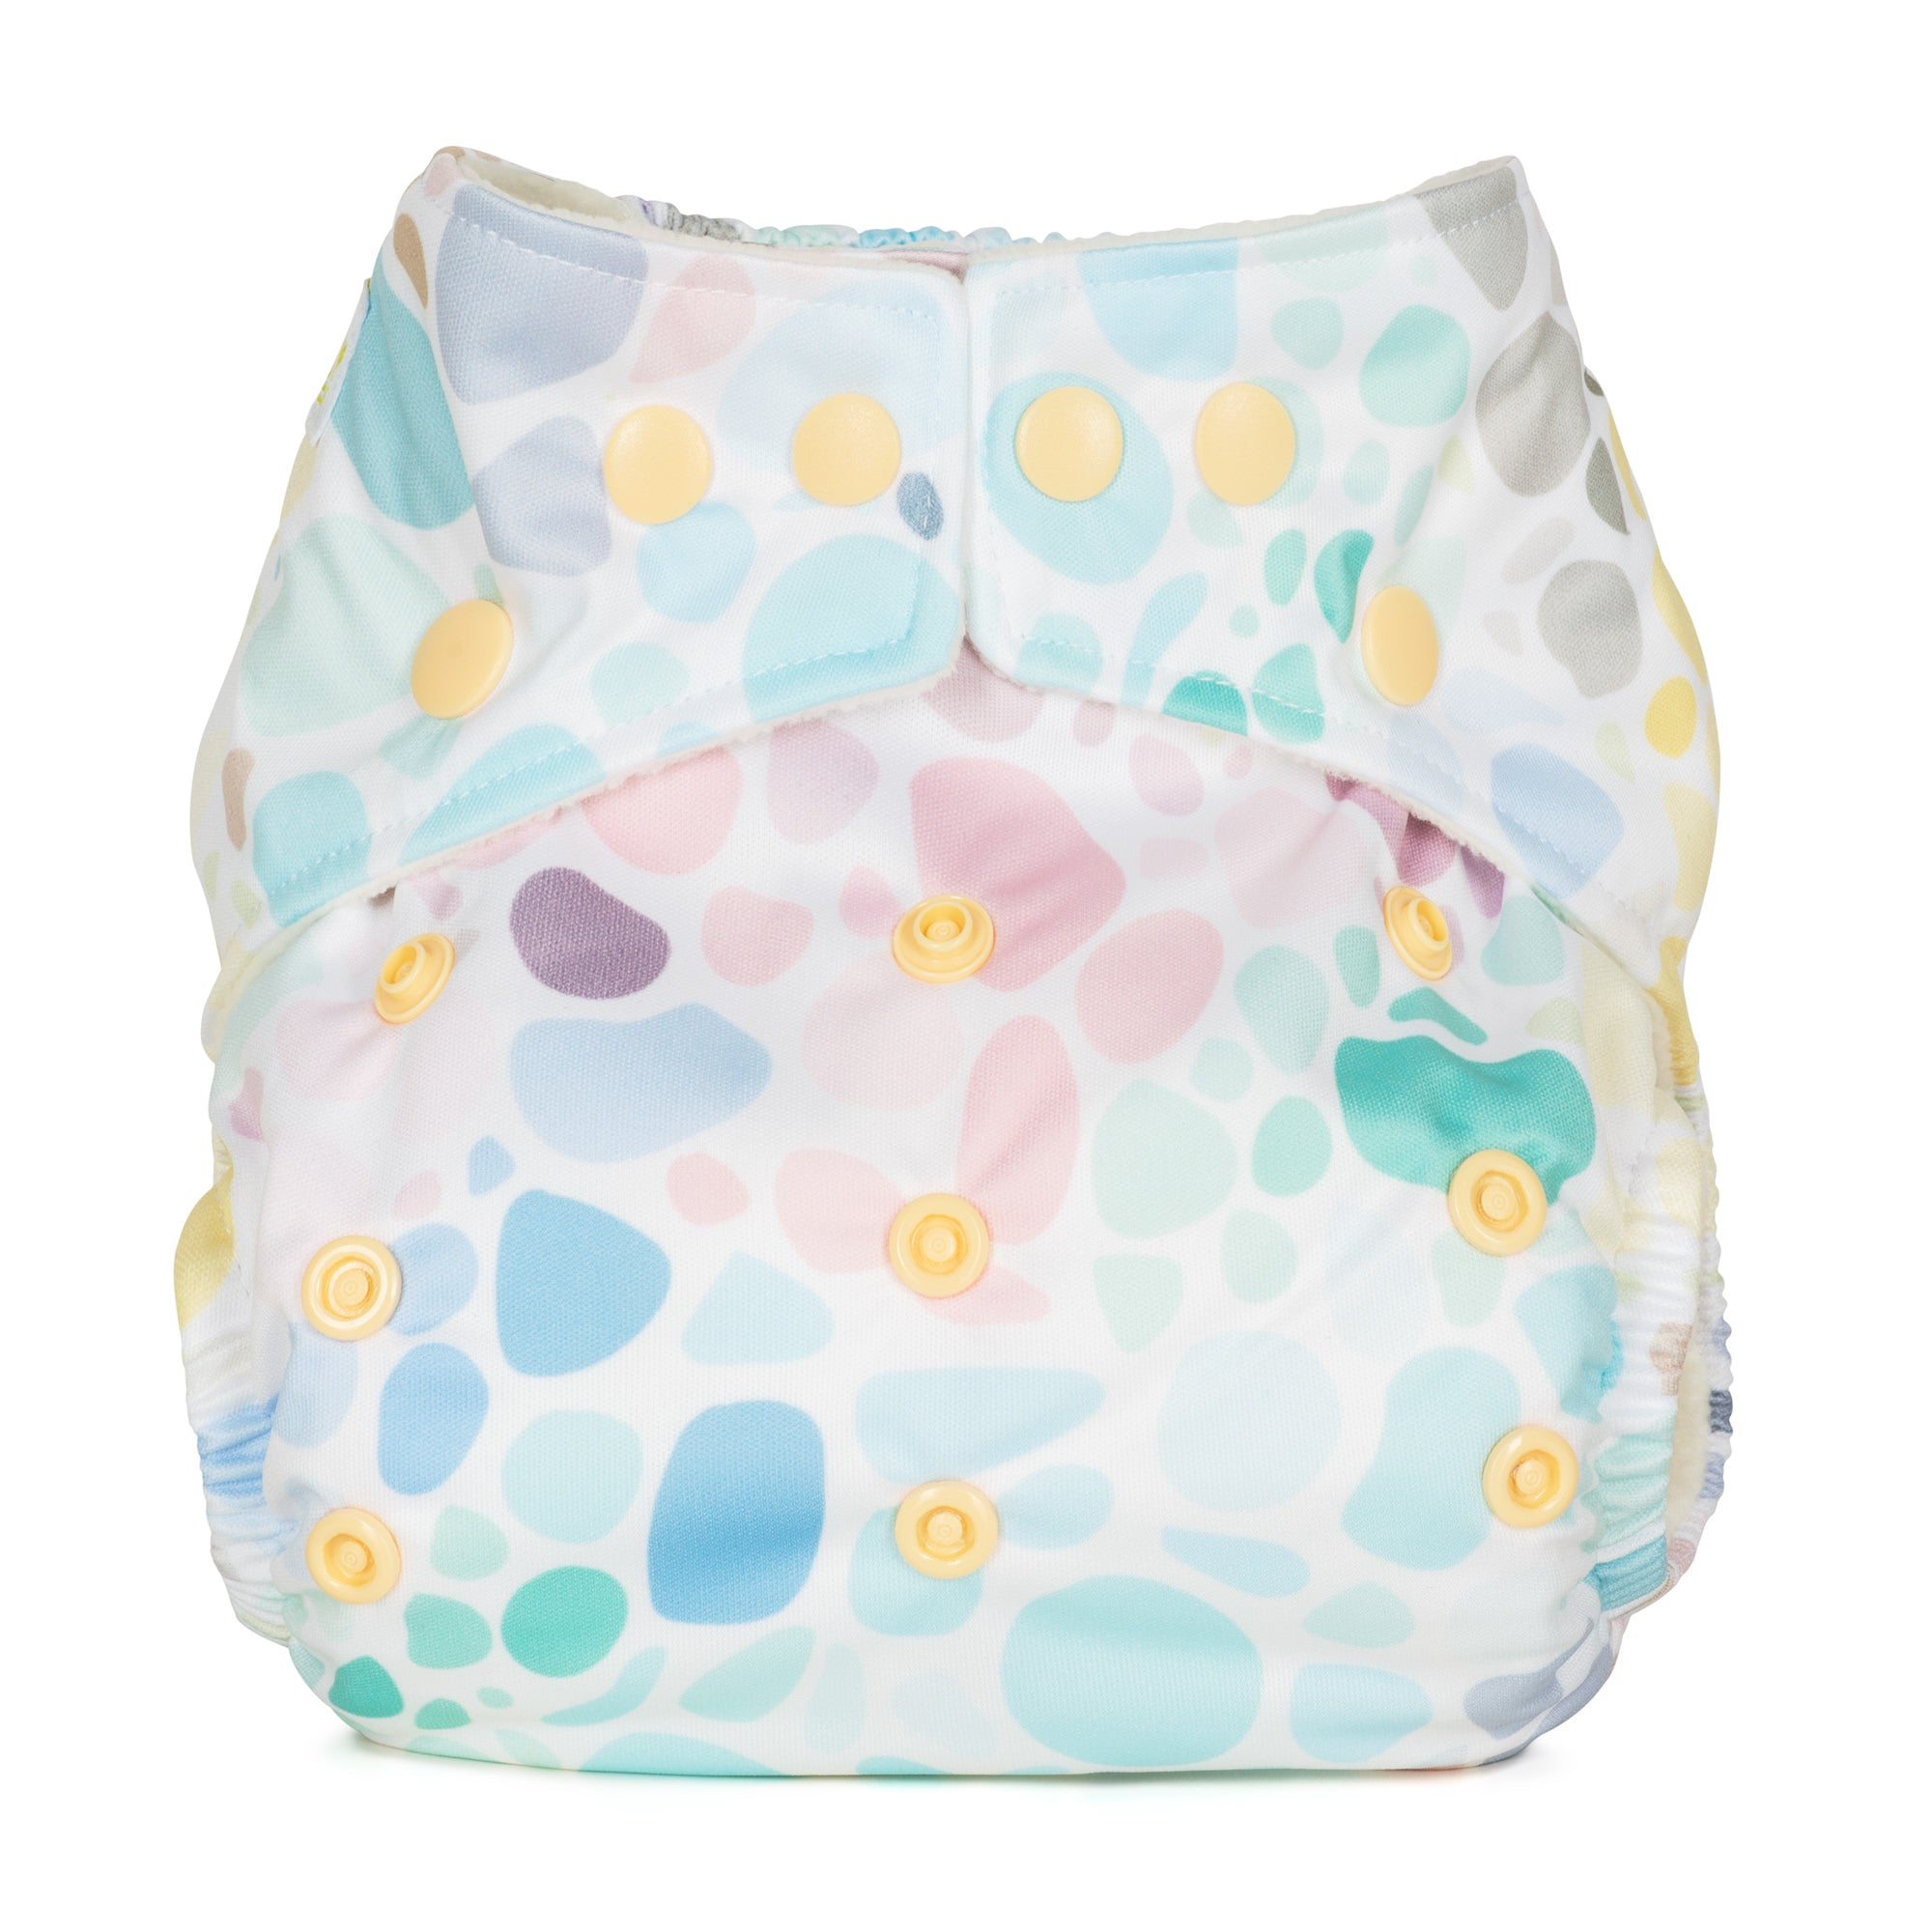 Baba and Boo One Size Pocket Cloth Nappy - Pebbles